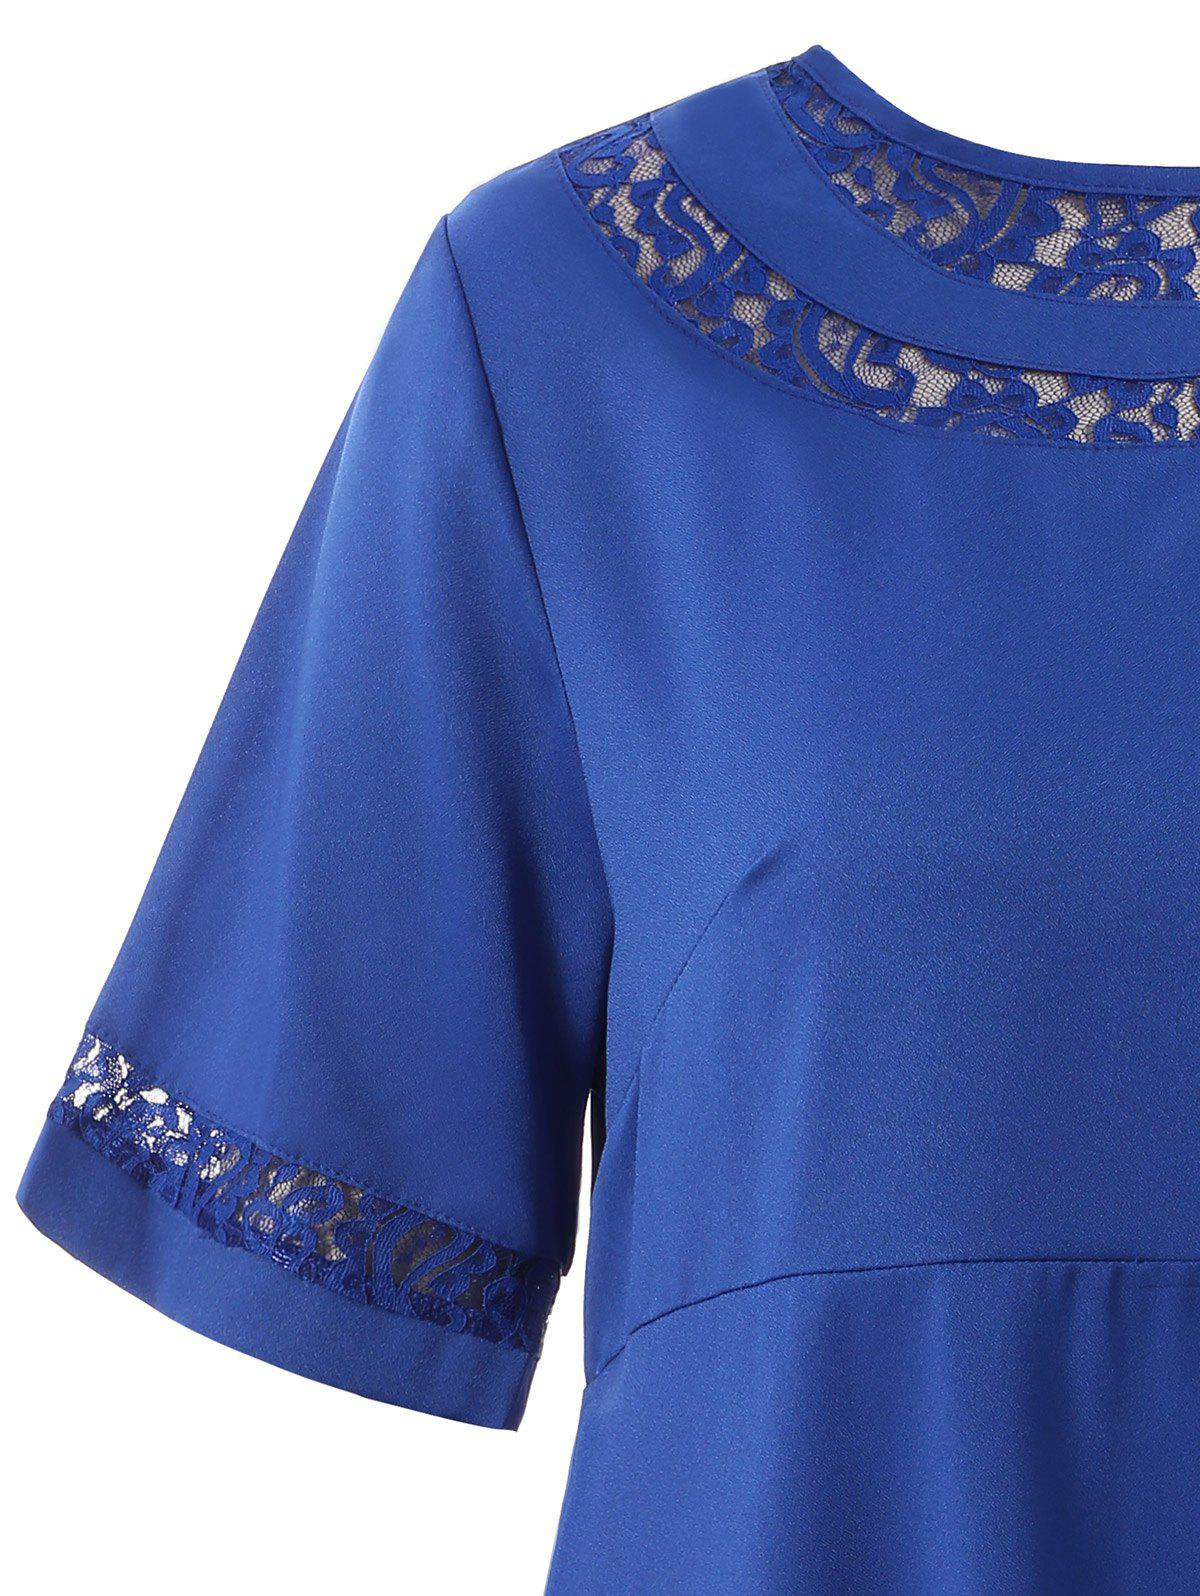 Lace Trim plus robe Taille Shift - Bleu 4XL